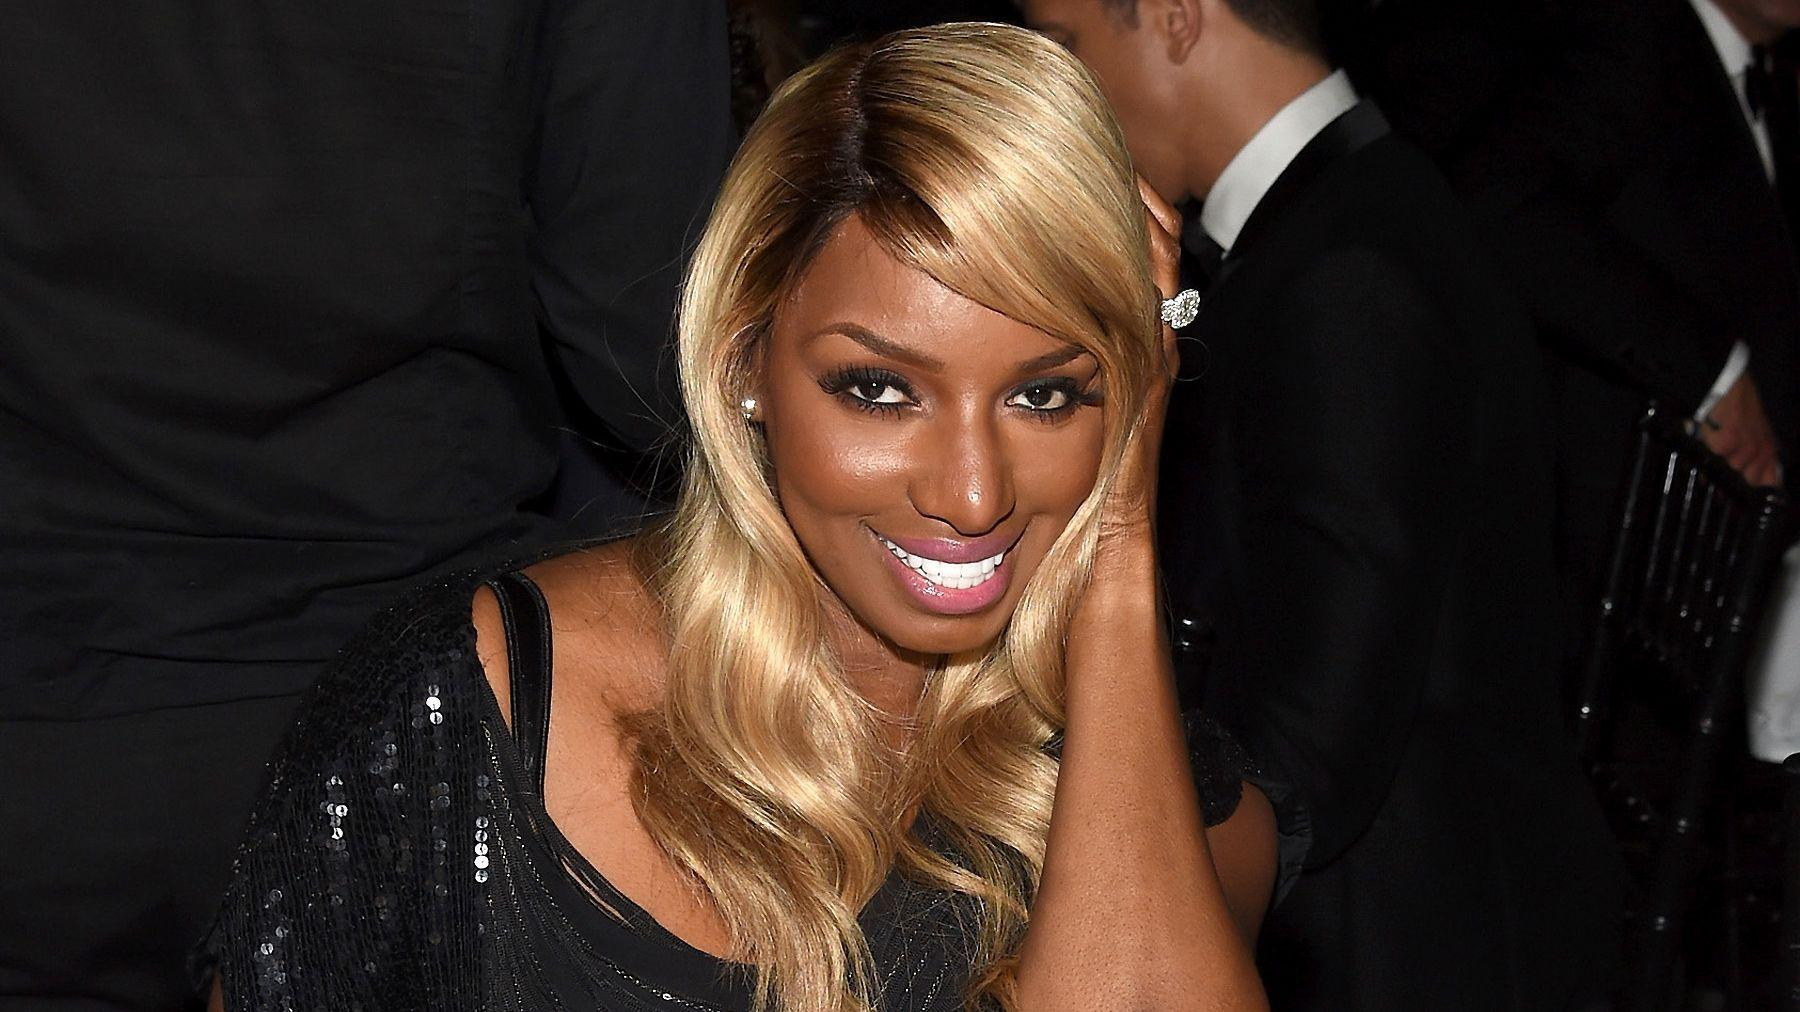 NeNe Leakes Is Radiant In White, Showing Off Her Swagg Boutique